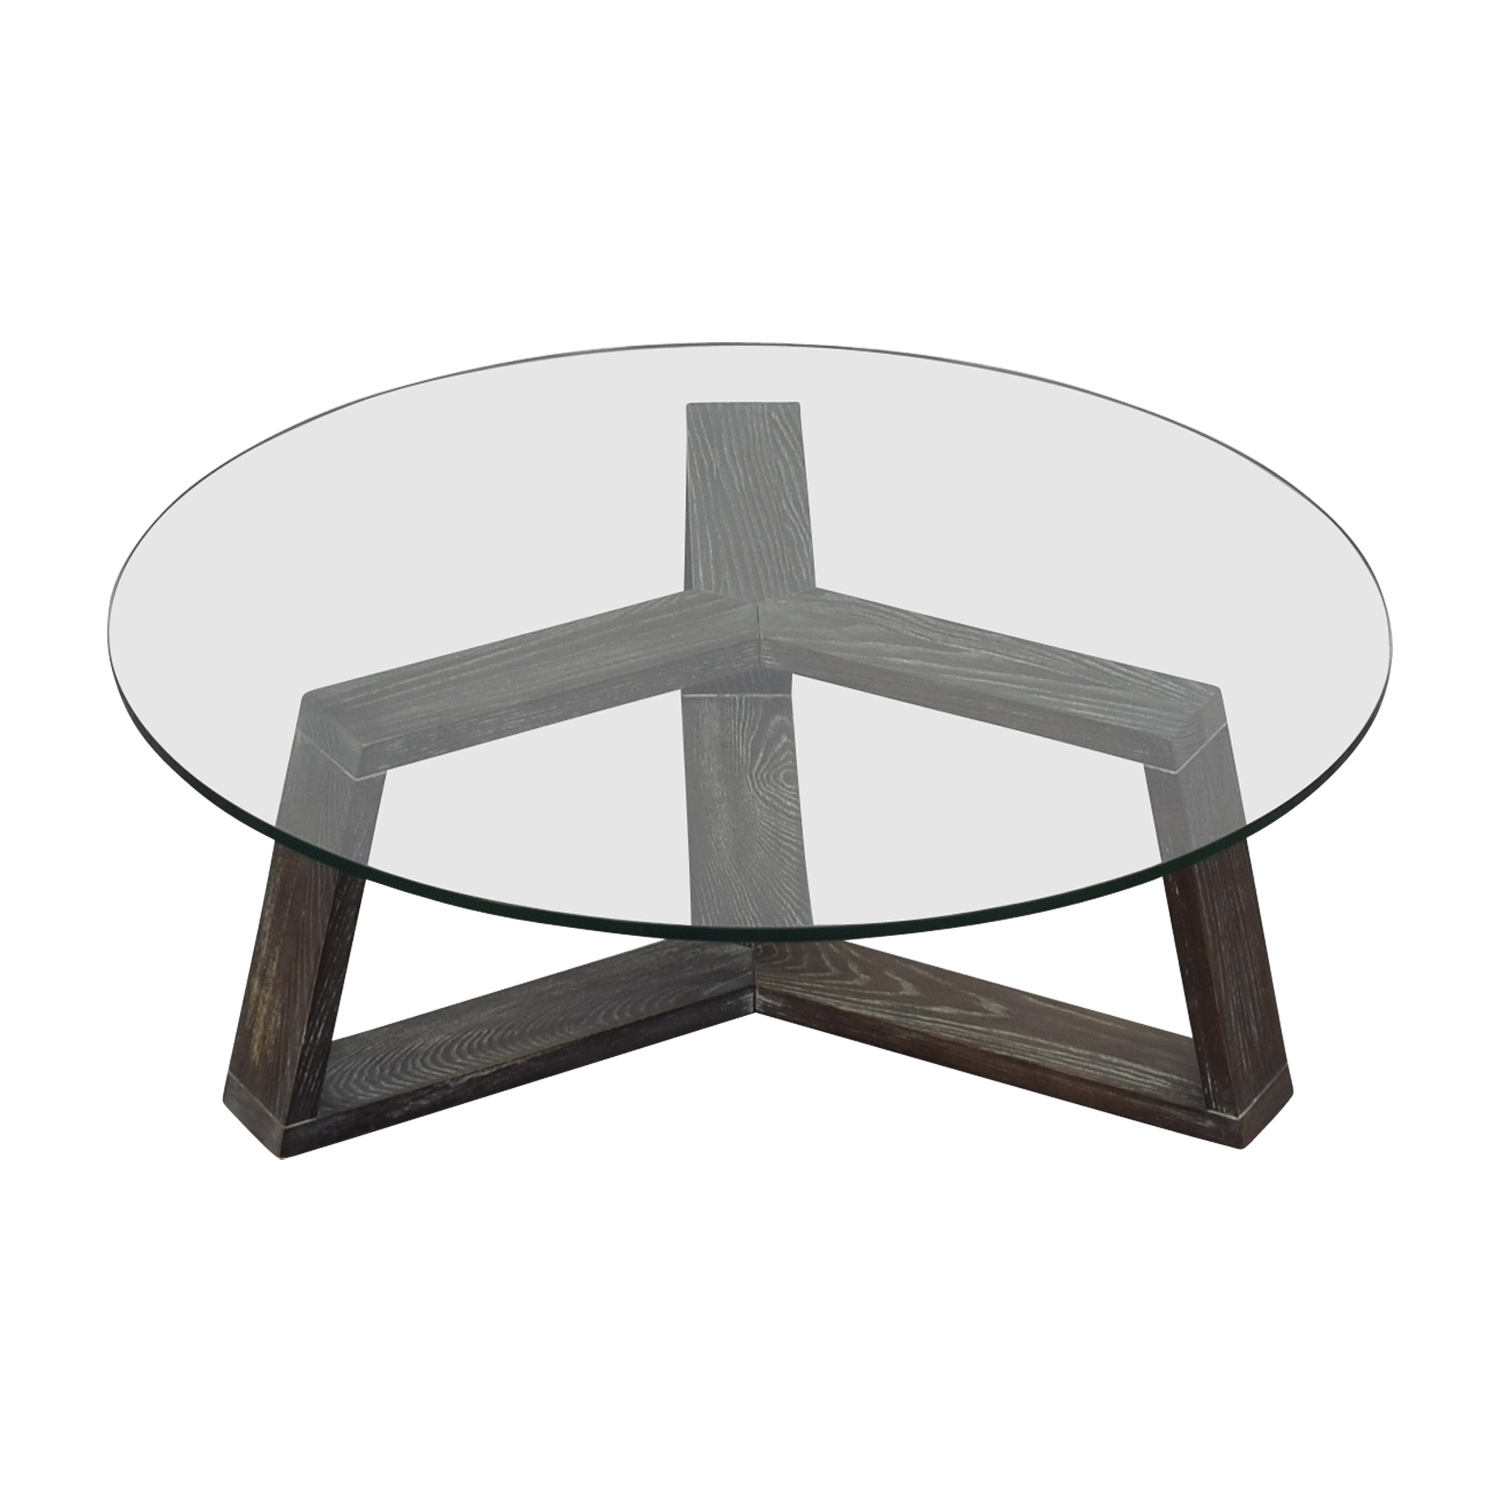 CB2 CB2 Round Glass And Wood Coffee Table nyc